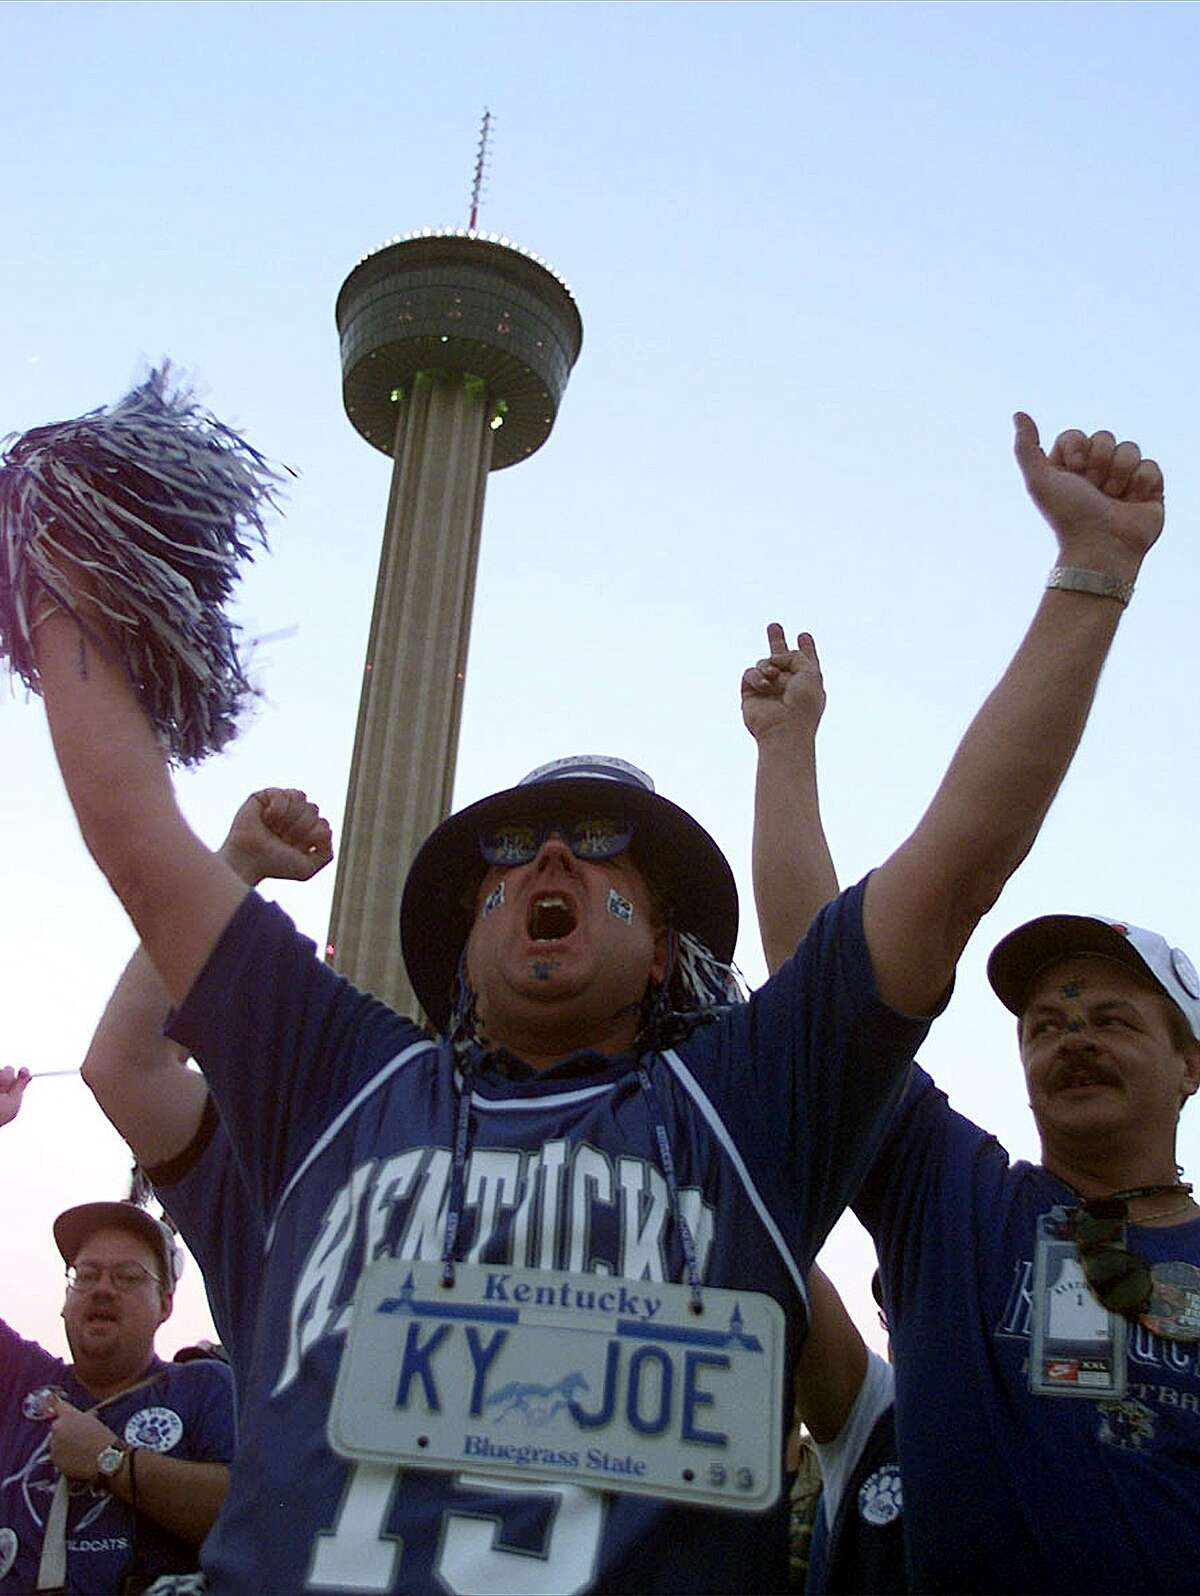 Kentucky fan Joe Crain, Stanford, Kentucky, cheers during a University of Kentucky pep rally at HemisFair Plaza before the NCAA Final Four final against Utah on March 30, 1998, in San Antonio, Texas.